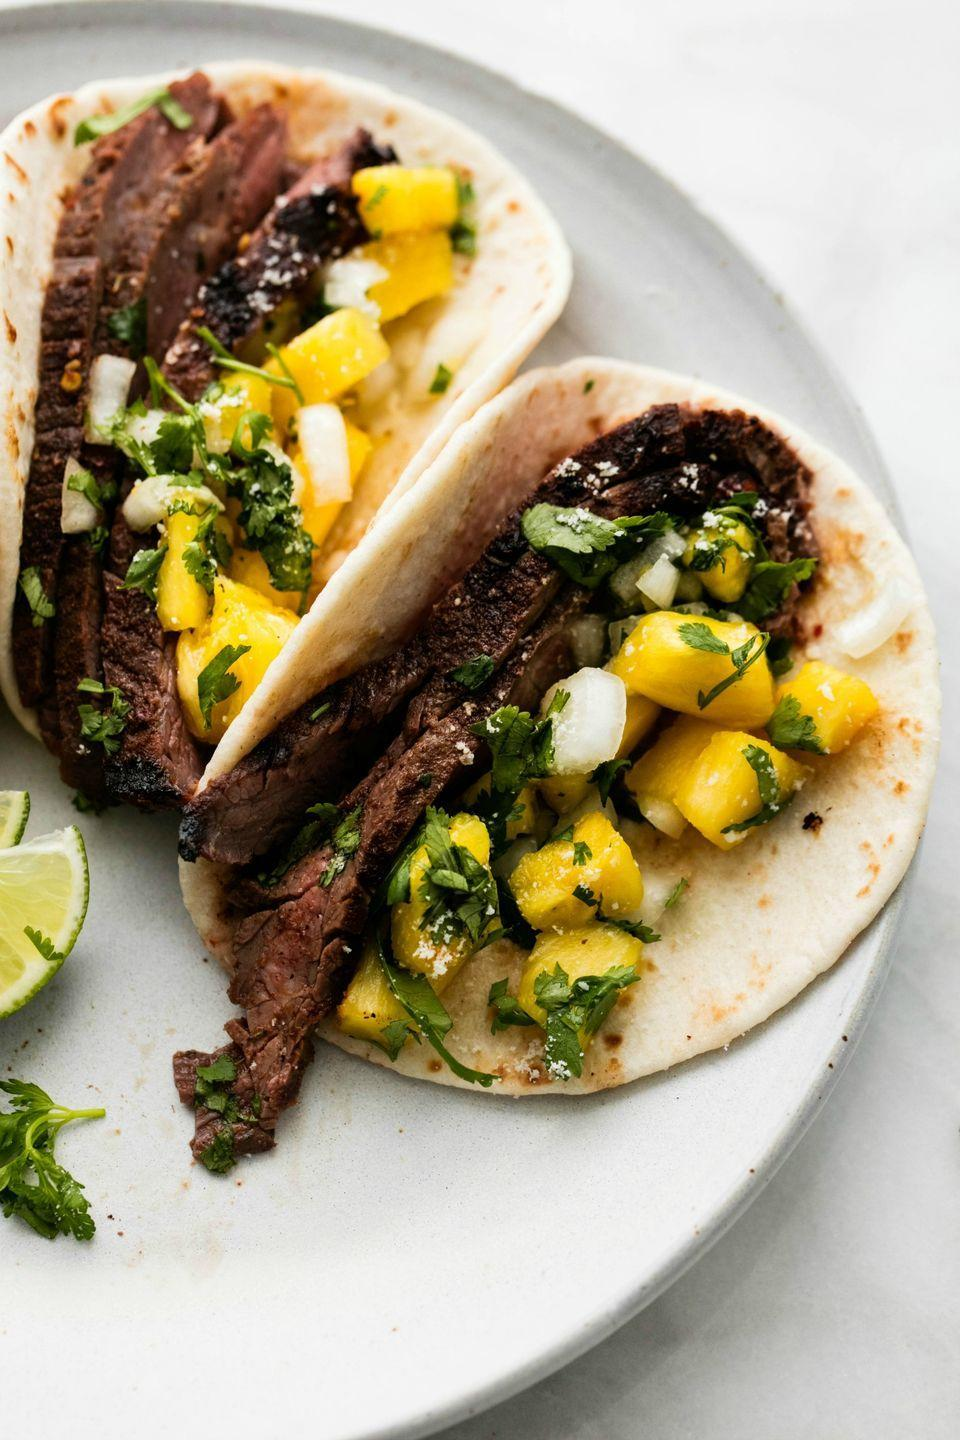 """<p>Everything is better when it's a taco.</p><p>Get the recipe from <a href=""""https://www.delish.com/cooking/recipe-ideas/recipes/a52048/jamaican-jerk-steak-tacos-recipe/"""" rel=""""nofollow noopener"""" target=""""_blank"""" data-ylk=""""slk:Delish"""" class=""""link rapid-noclick-resp"""">Delish</a>.</p>"""